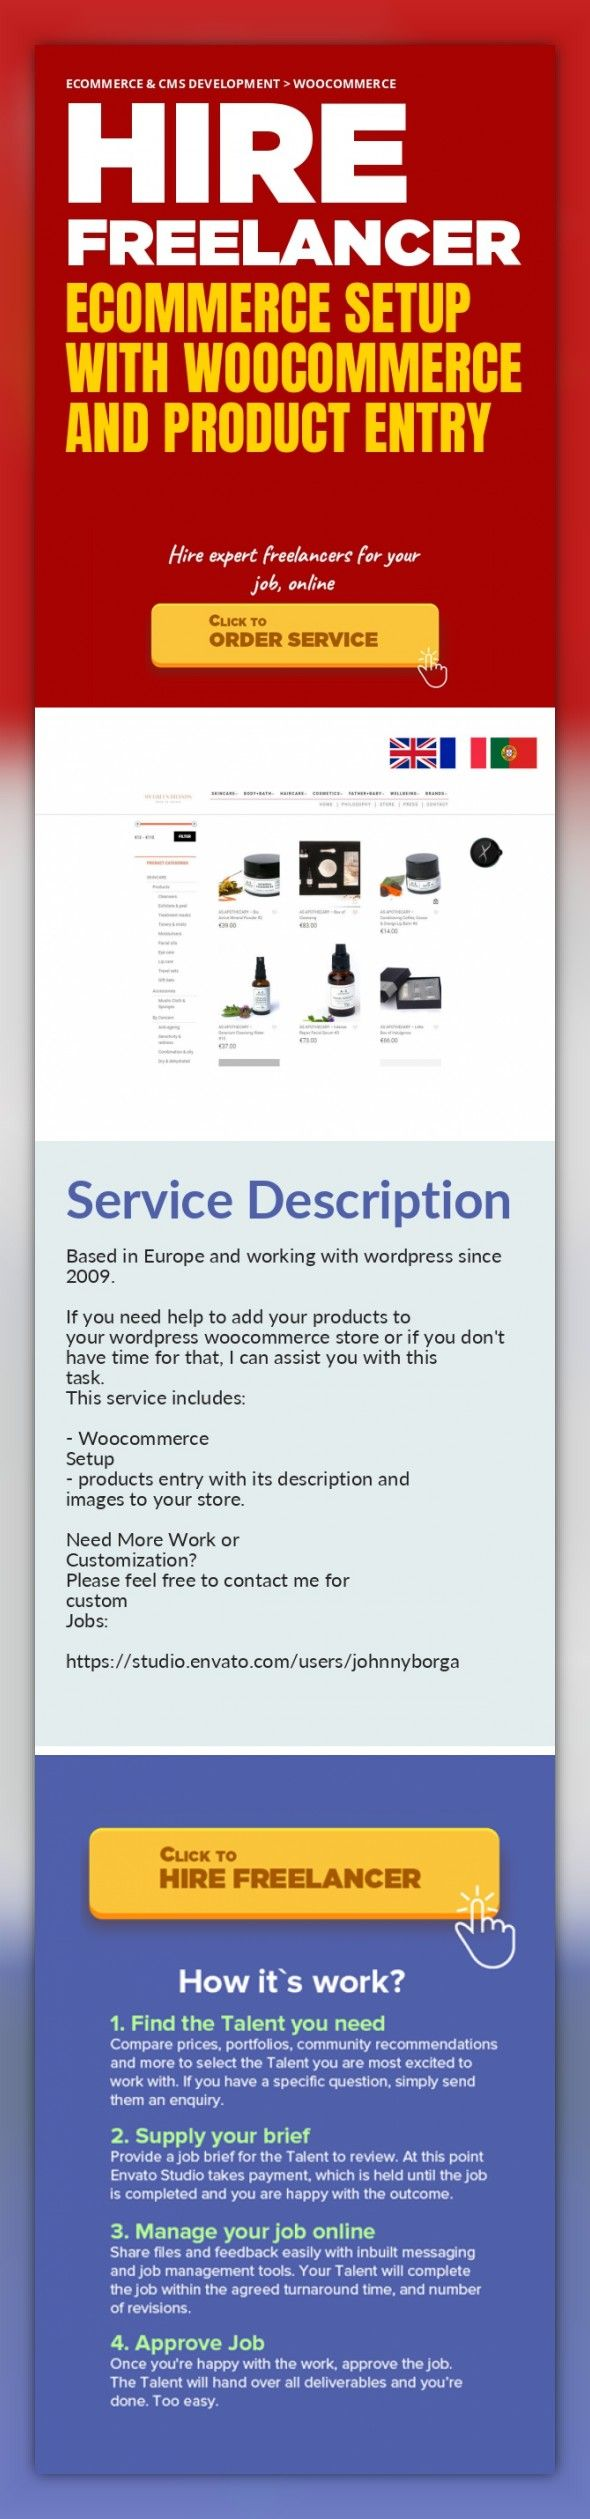 Ecommerce setup with Woocommerce and Product entry Ecommerce & CMS Development, WooCommerce   Based in Europe and working with wordpress since 2009.    If you need help to add your products to your wordpress woocommerce store or if you don't have time for that, I can assist you with this task.  This service includes:    - Woocommerce Setup  - products entry with its description and images to your ...